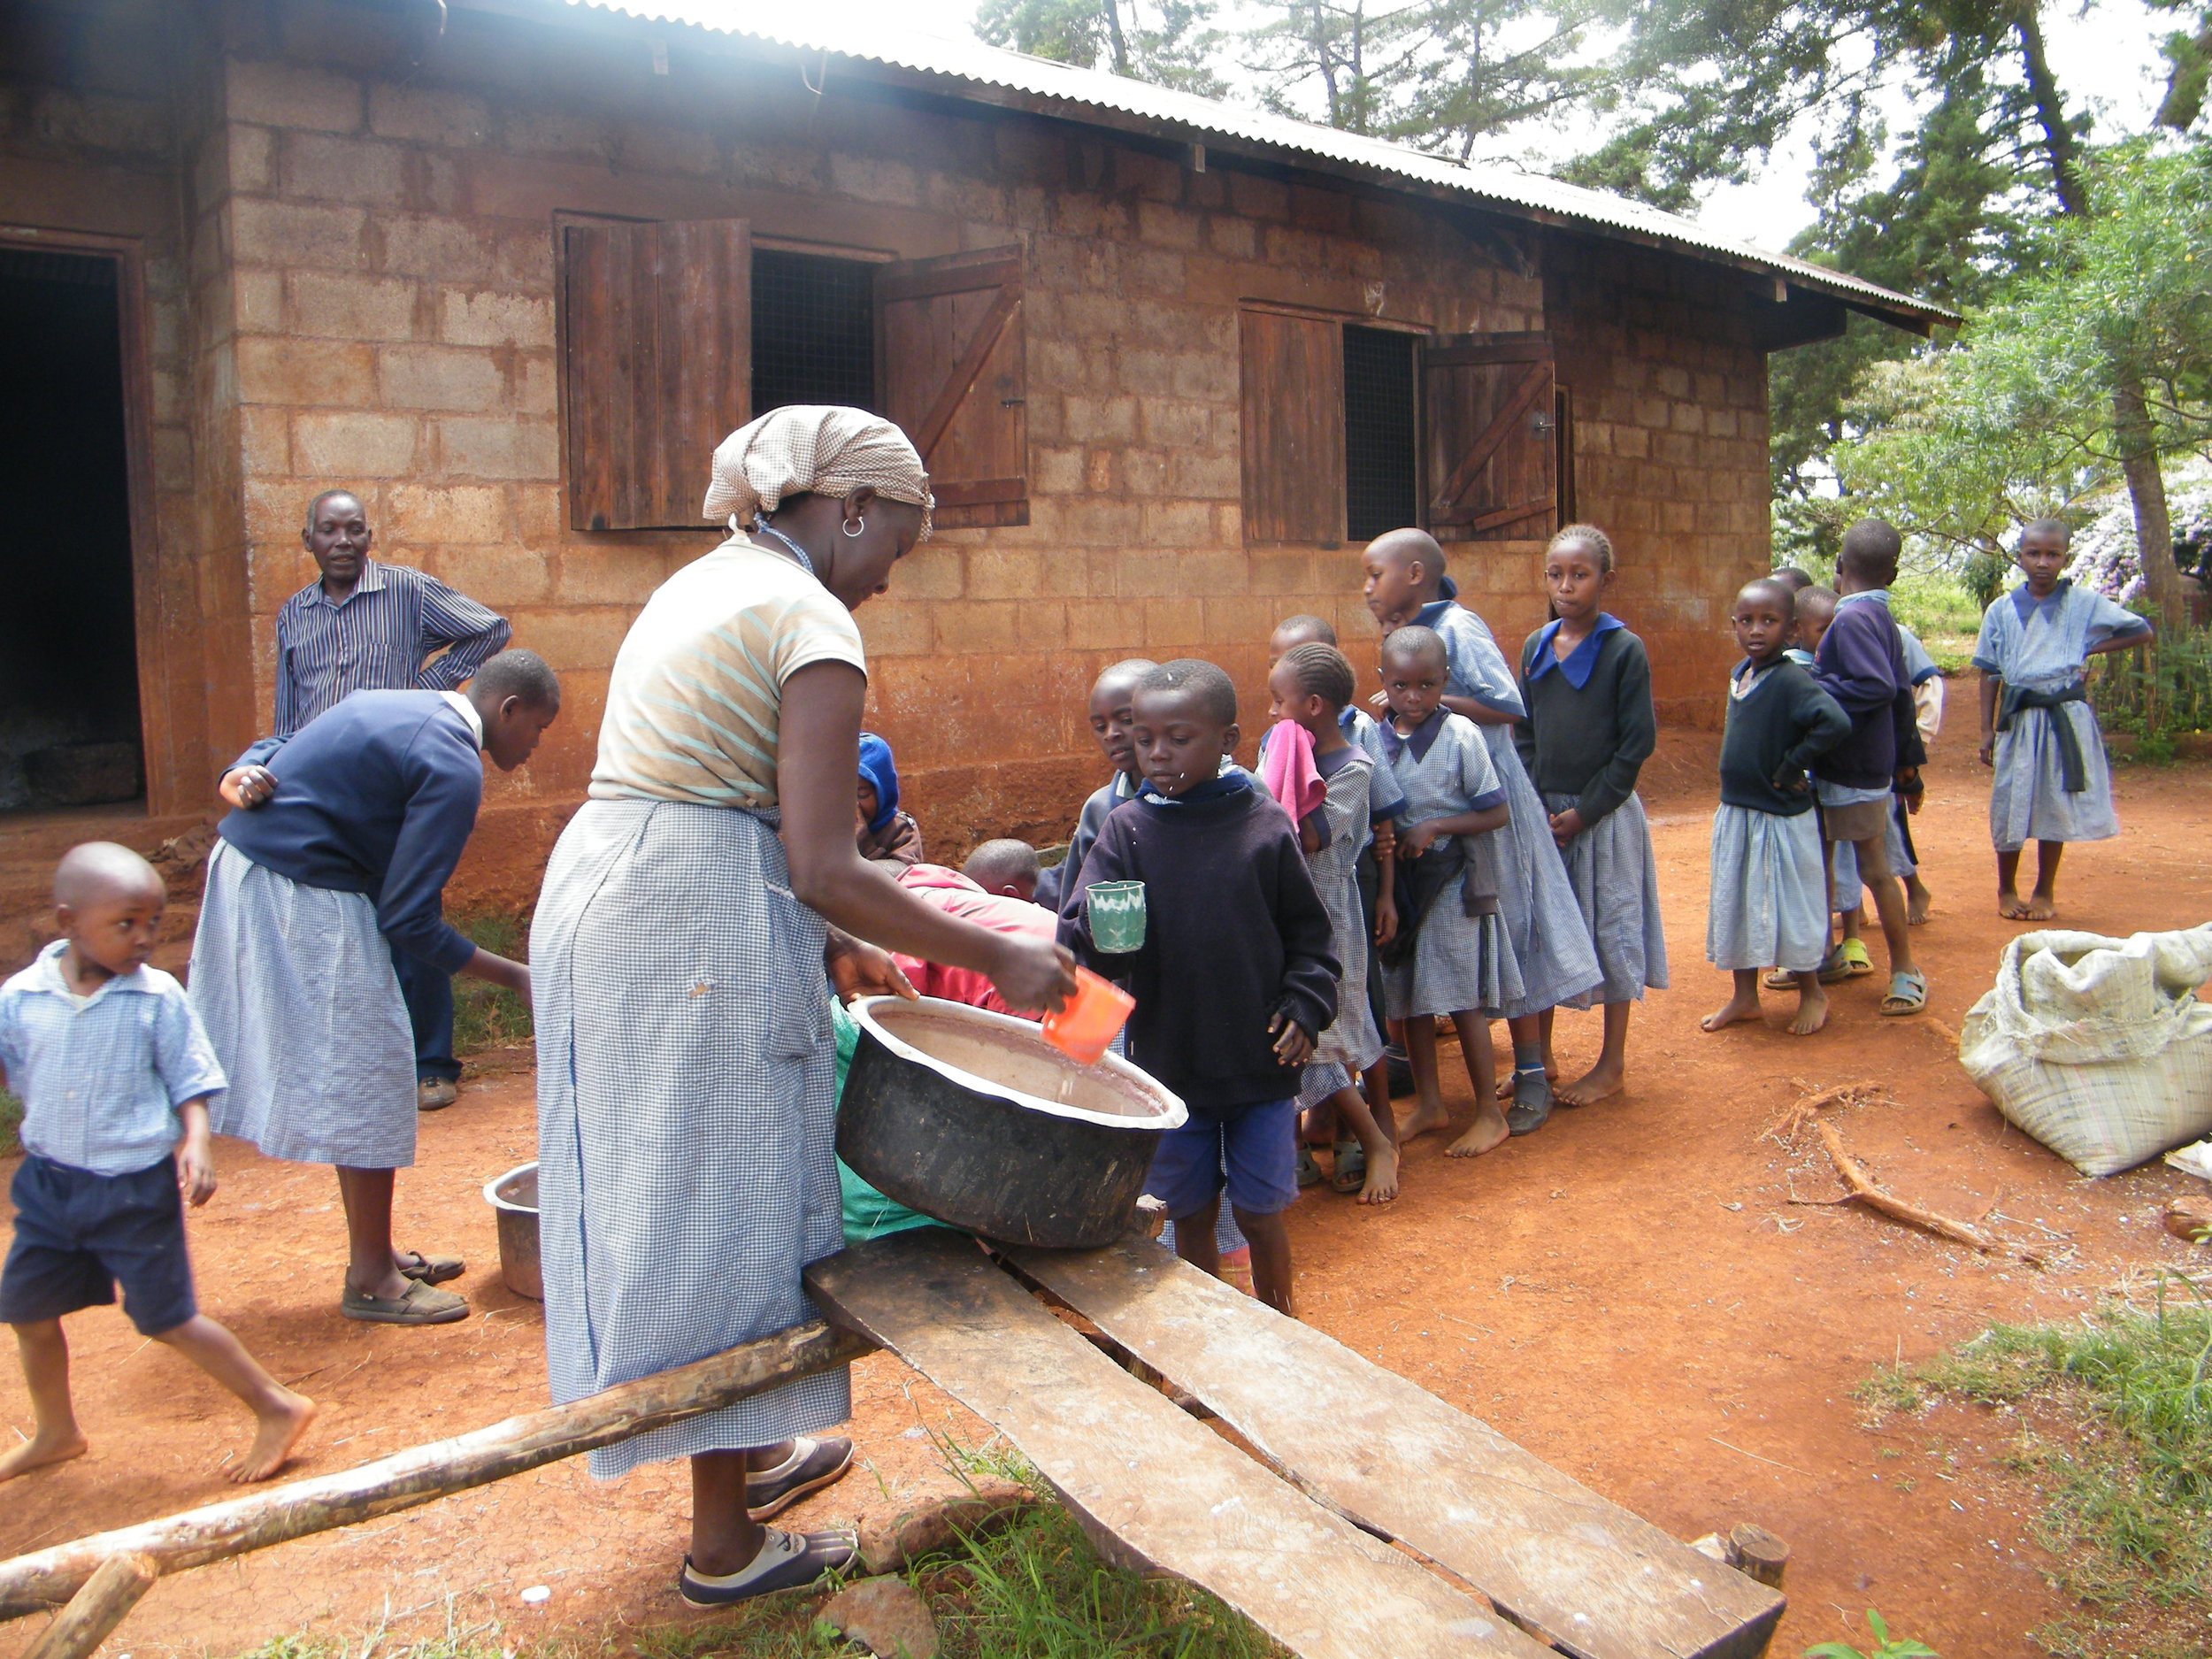 Kenyan children in blue uniforms queuing for porridge being served by a school cook.